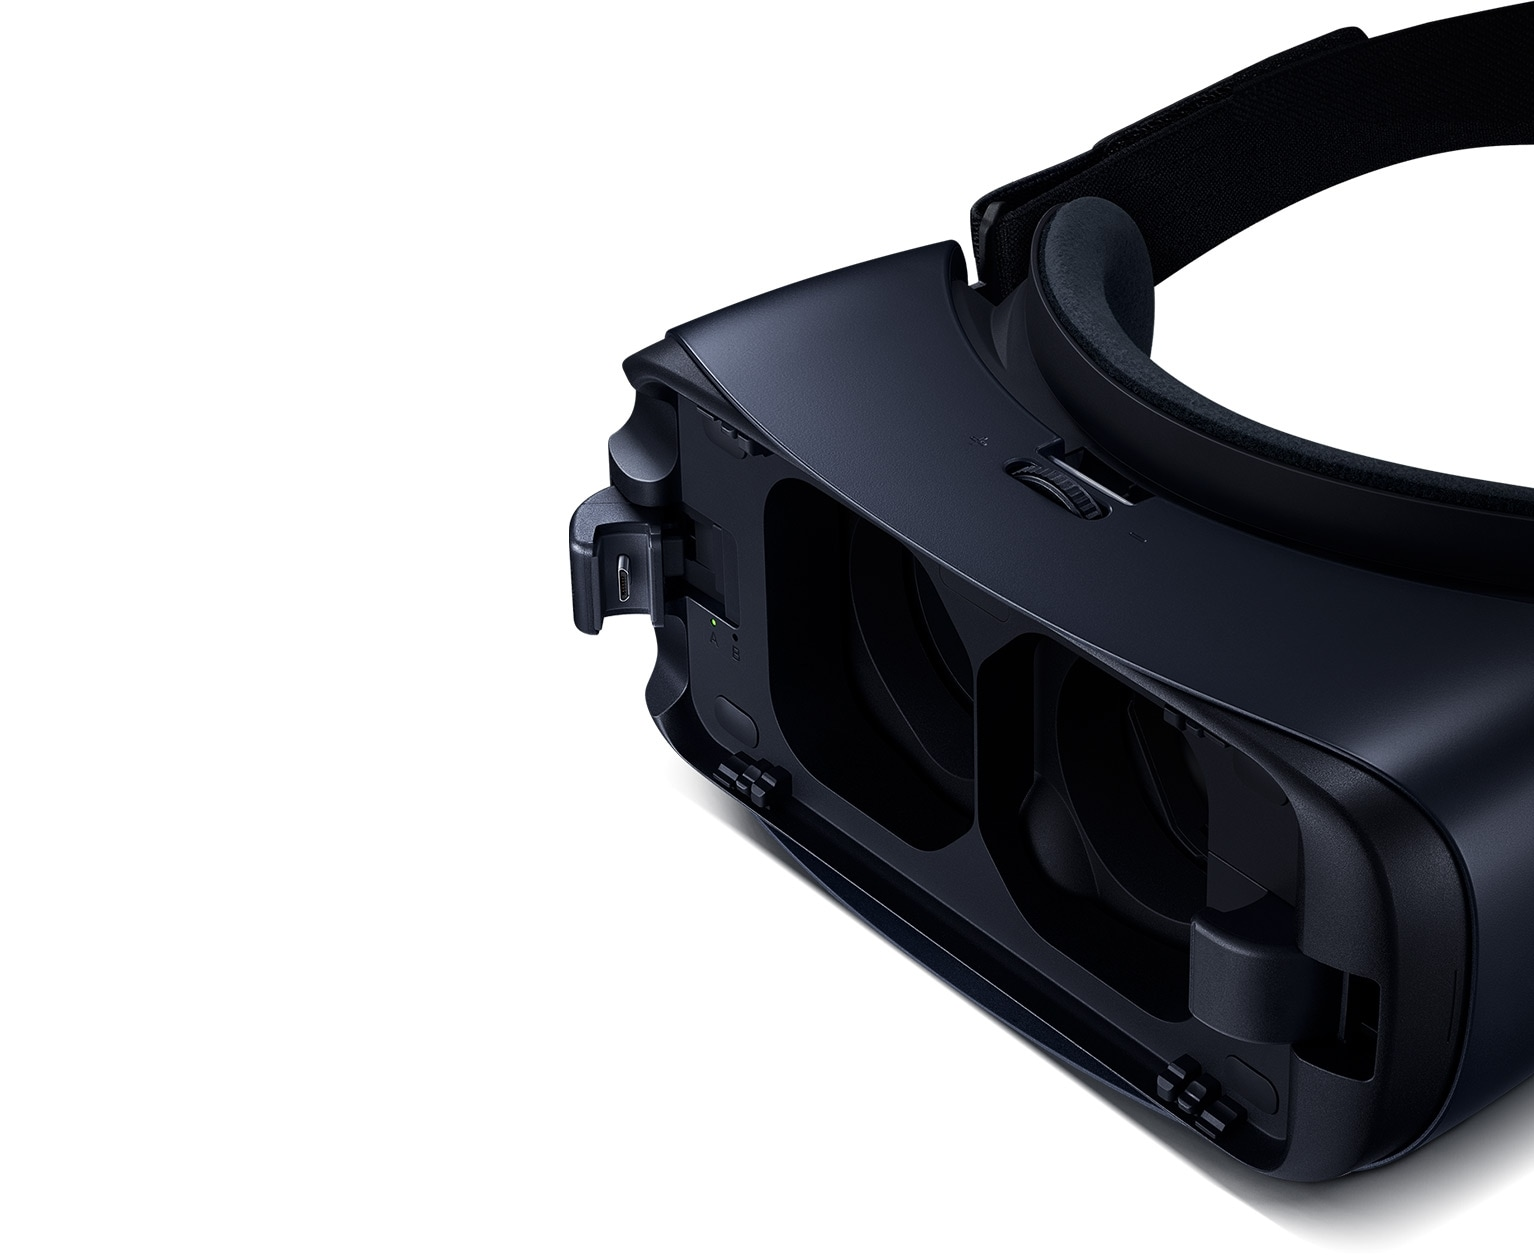 Samsung Gear Vr Brille Preis : Samsung gear vr virtual reality brille samsung